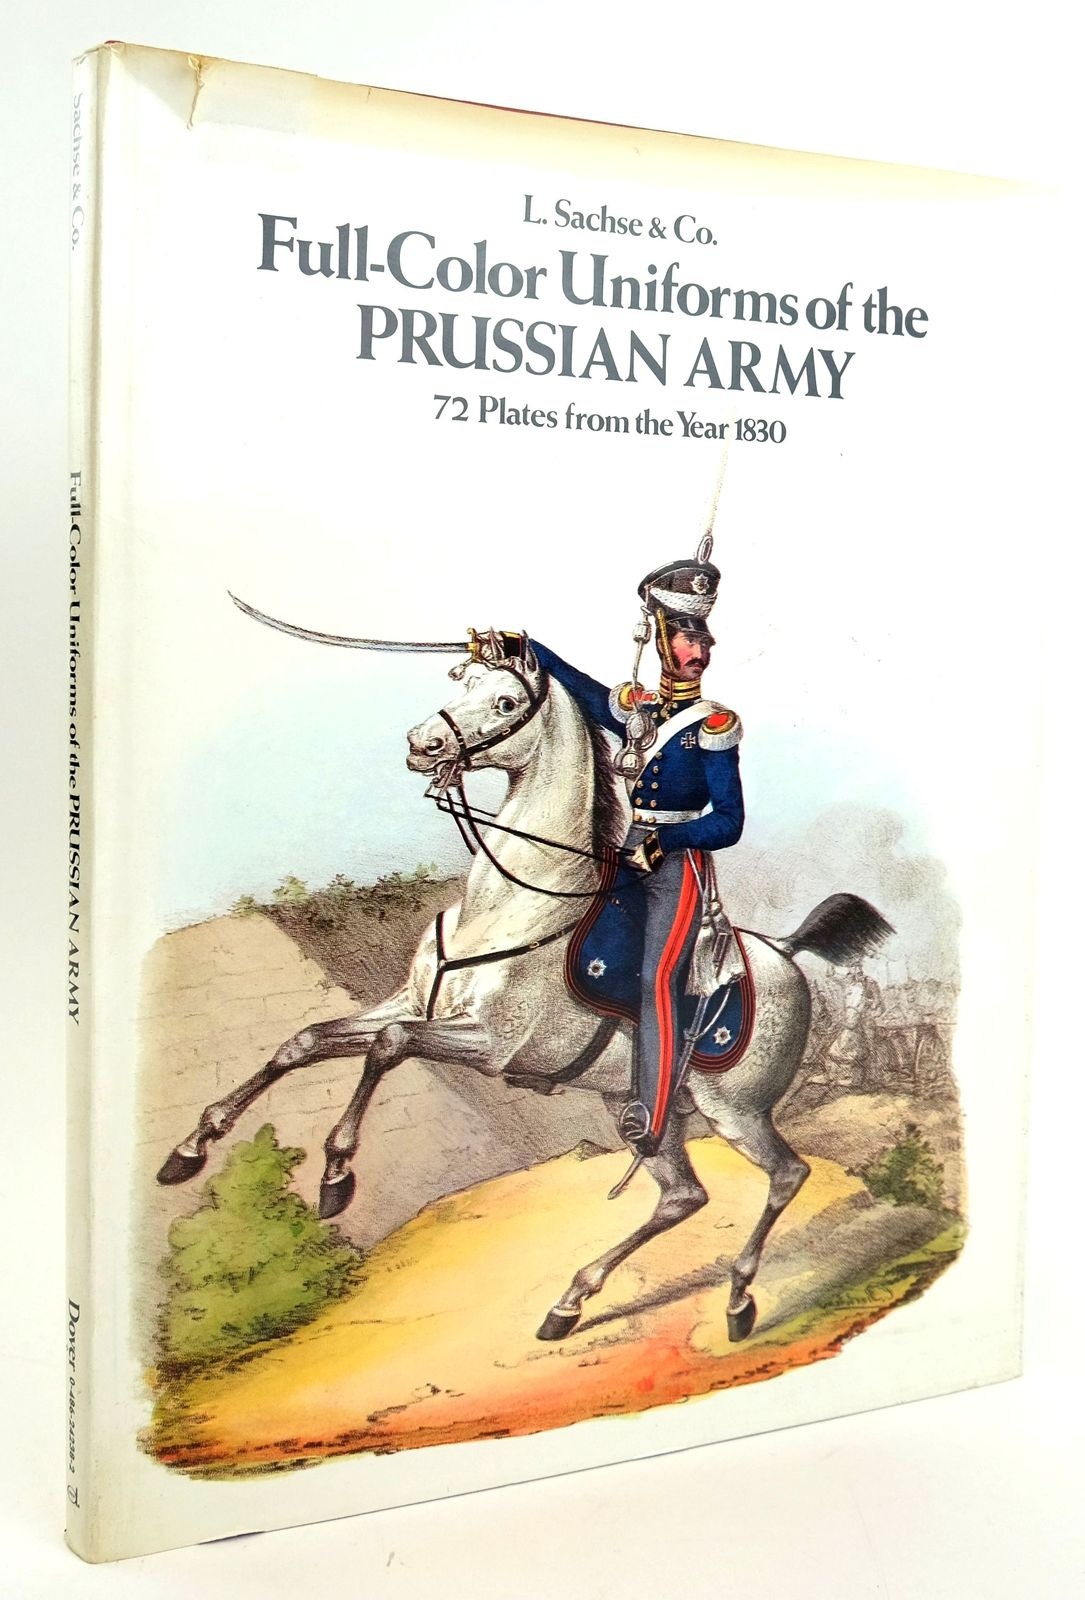 Photo of FULL-COLOR UNIFORMS OF THE PRUSSIAN ARMY published by Dover Publications Inc. (STOCK CODE: 1820040)  for sale by Stella & Rose's Books